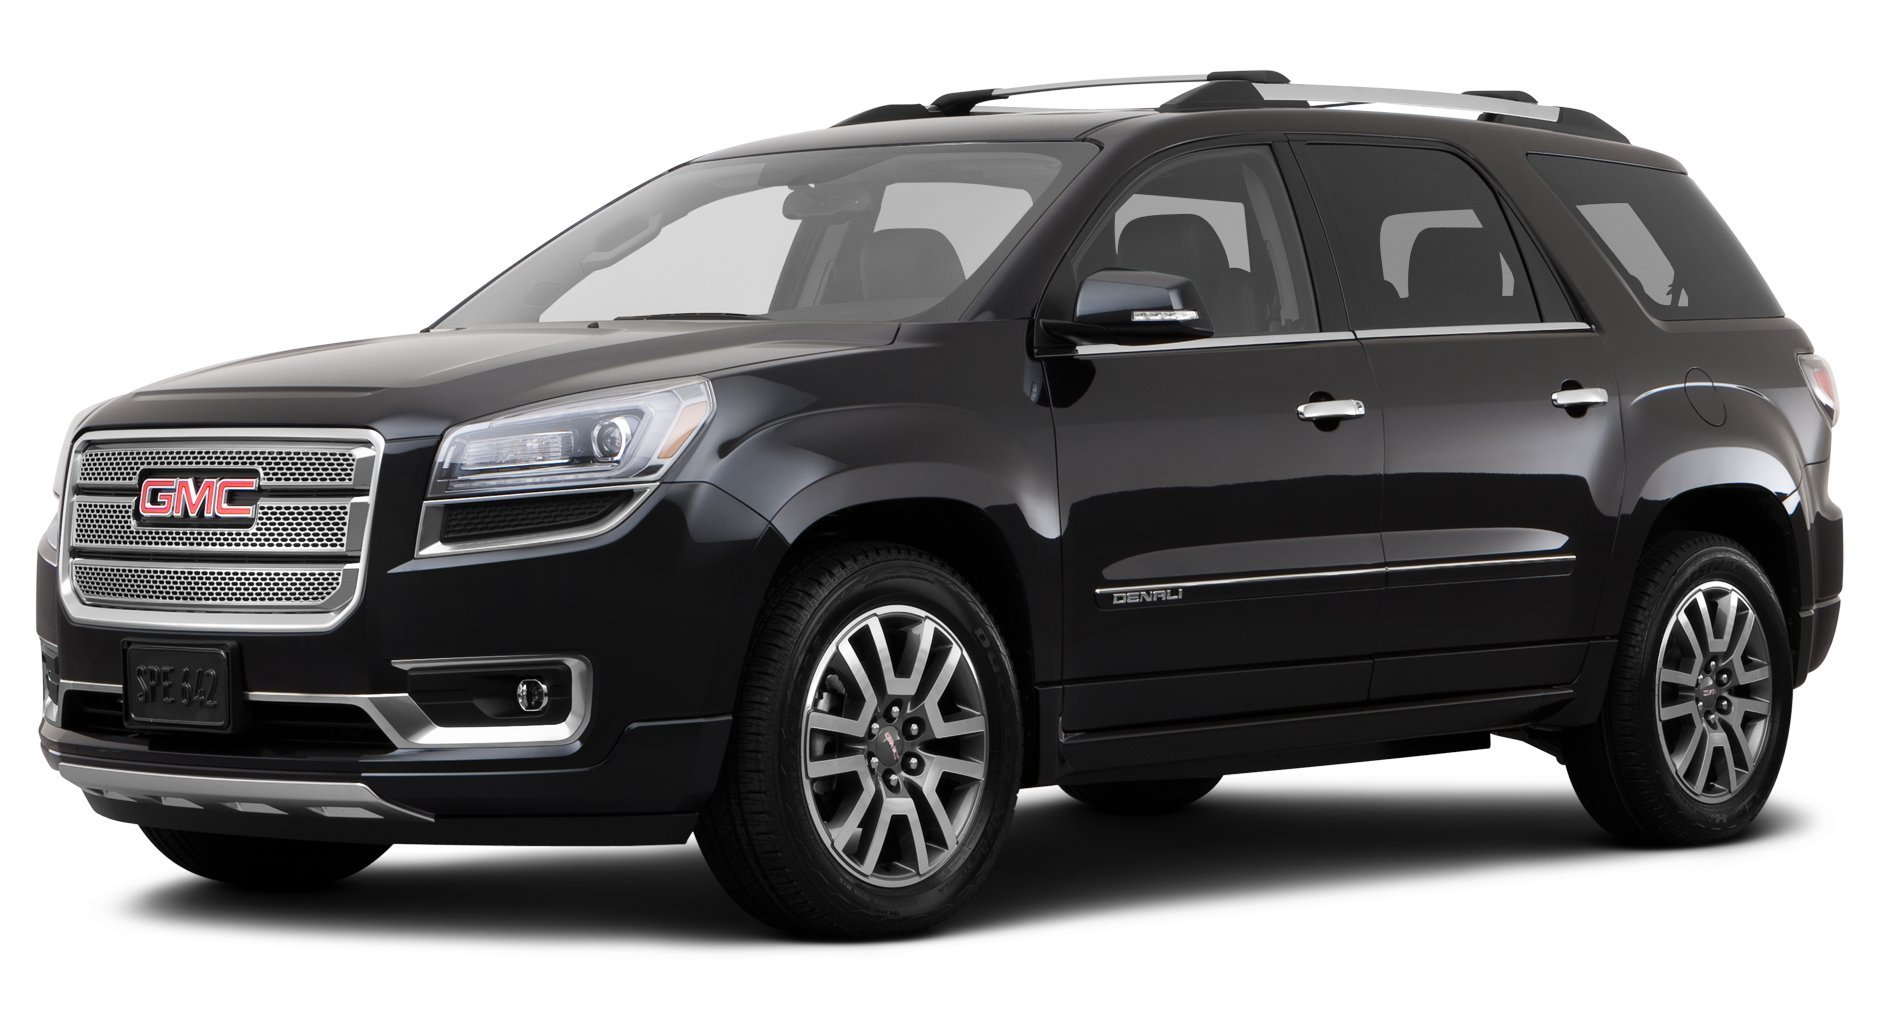 2014 gmc acadia reviews images and specs vehicles. Black Bedroom Furniture Sets. Home Design Ideas